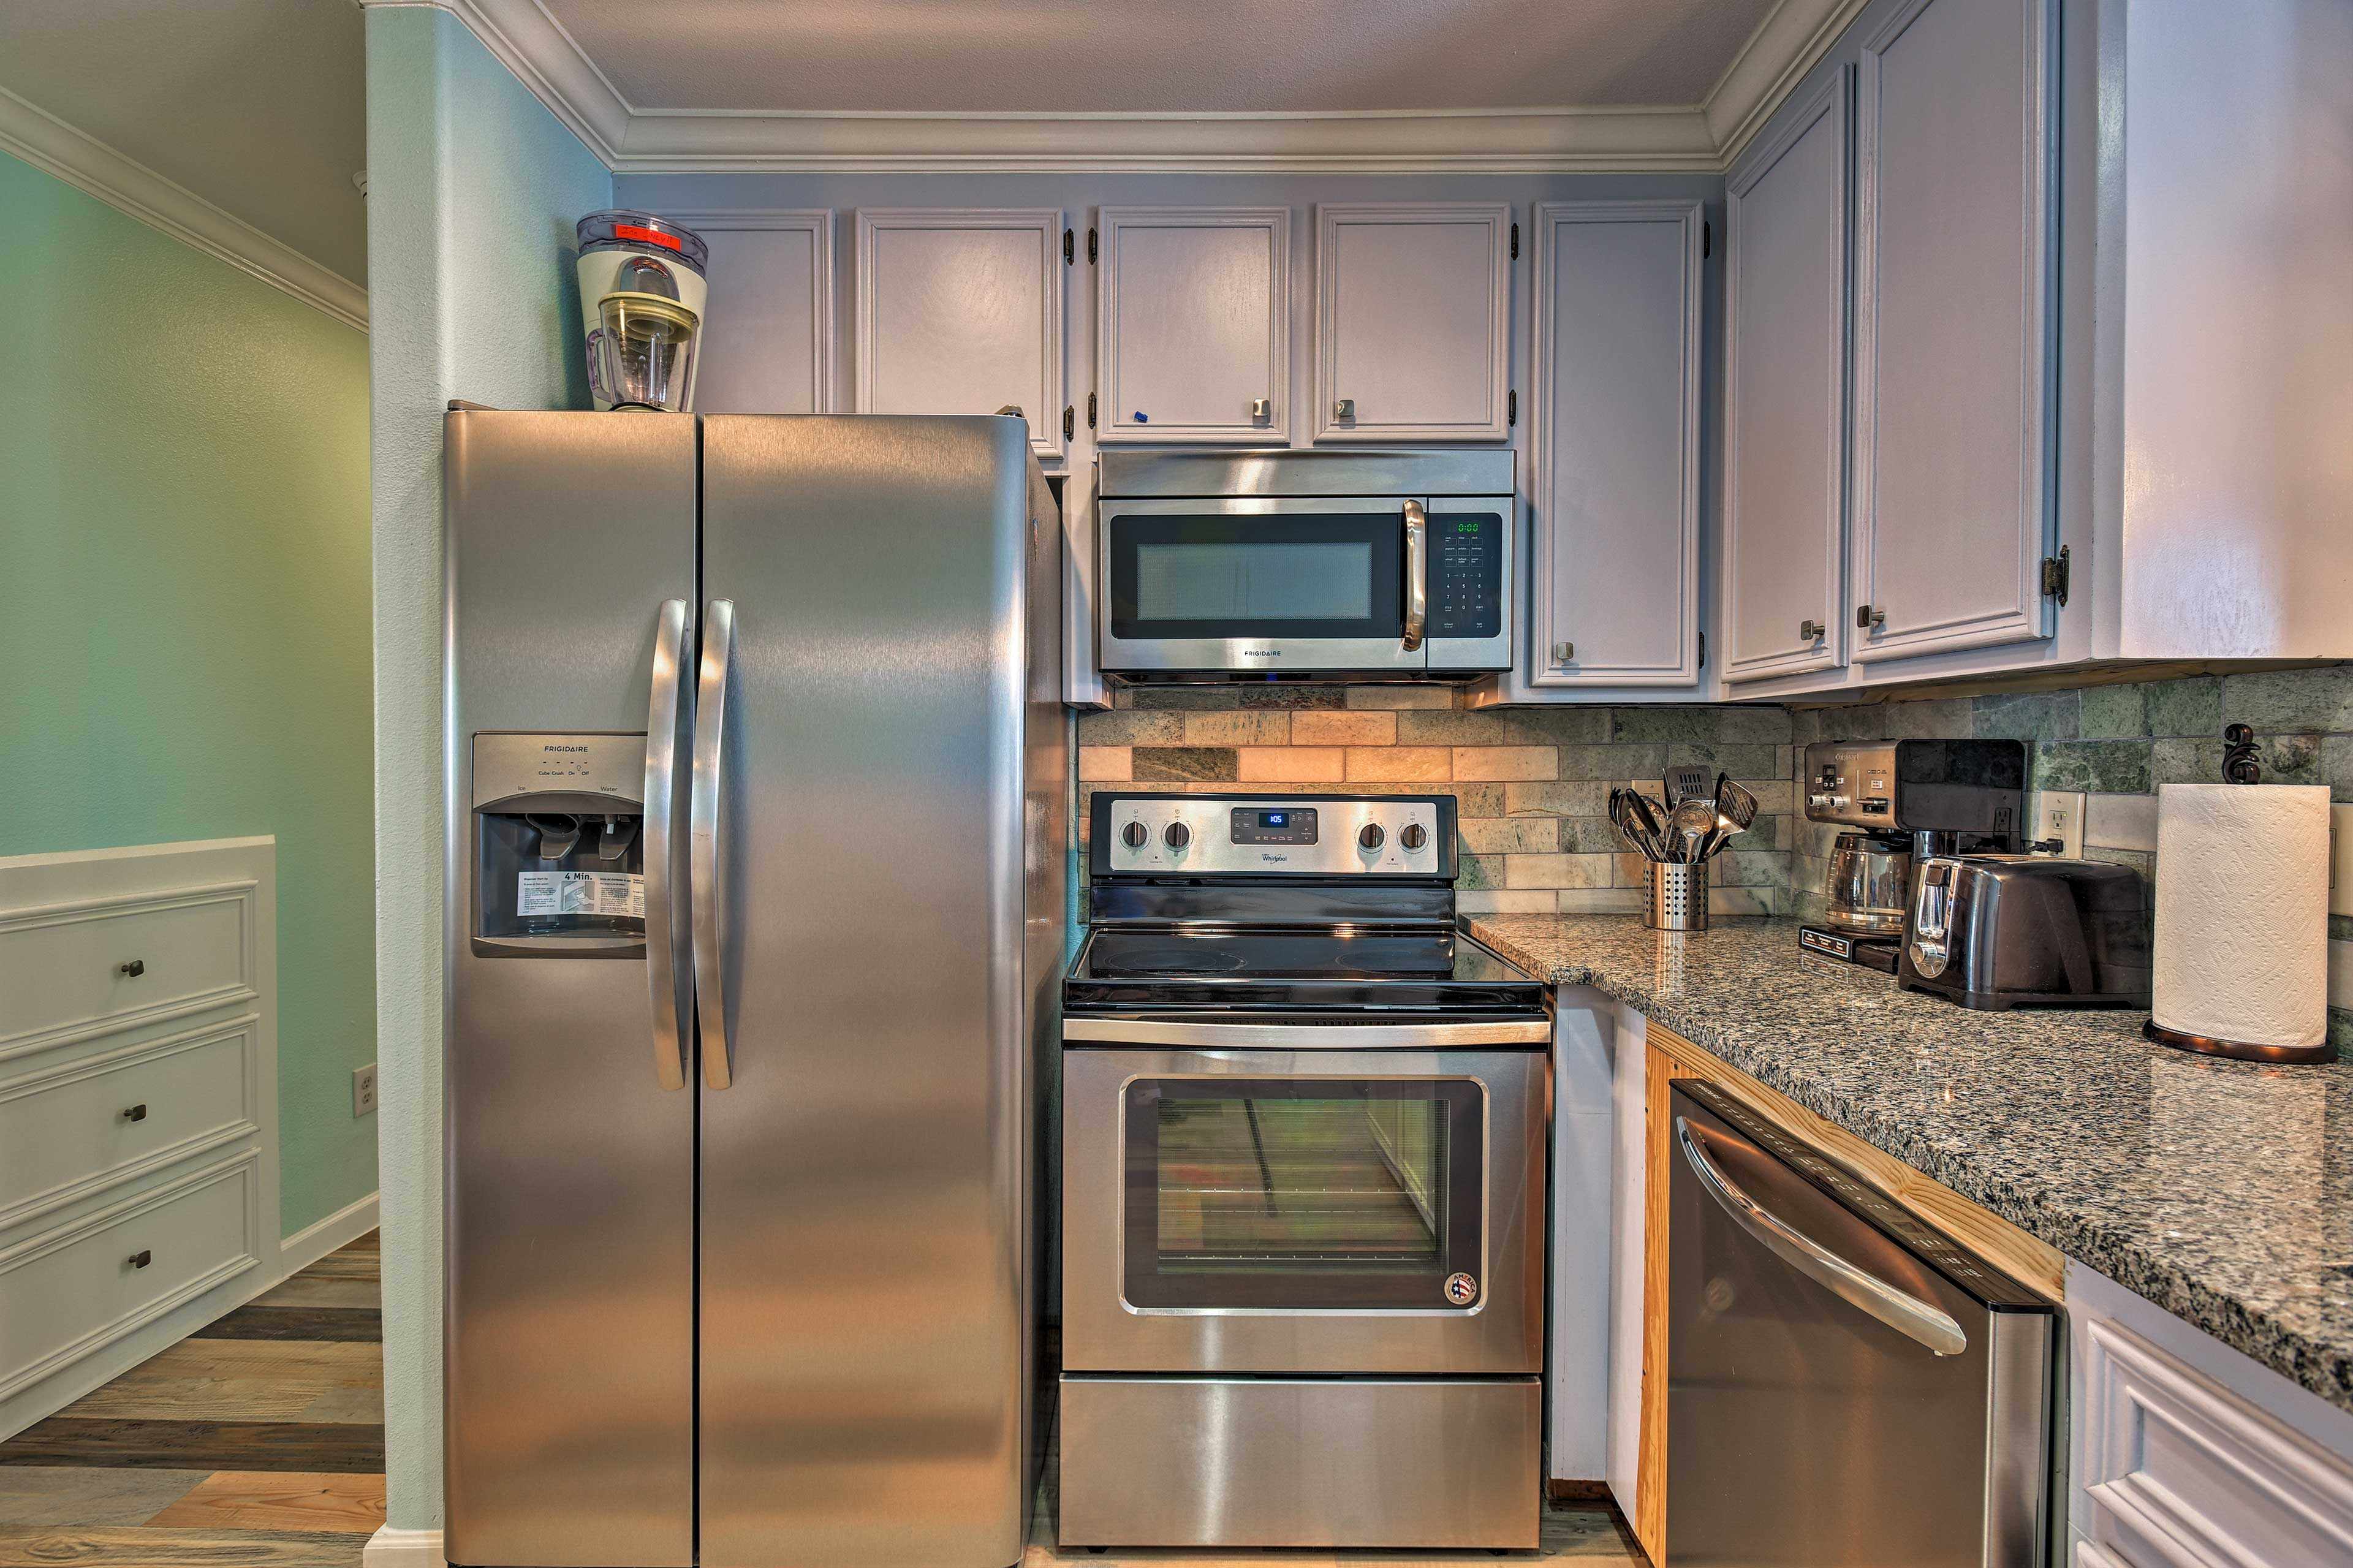 You'll love the granite countertops and stainless steel appliances.